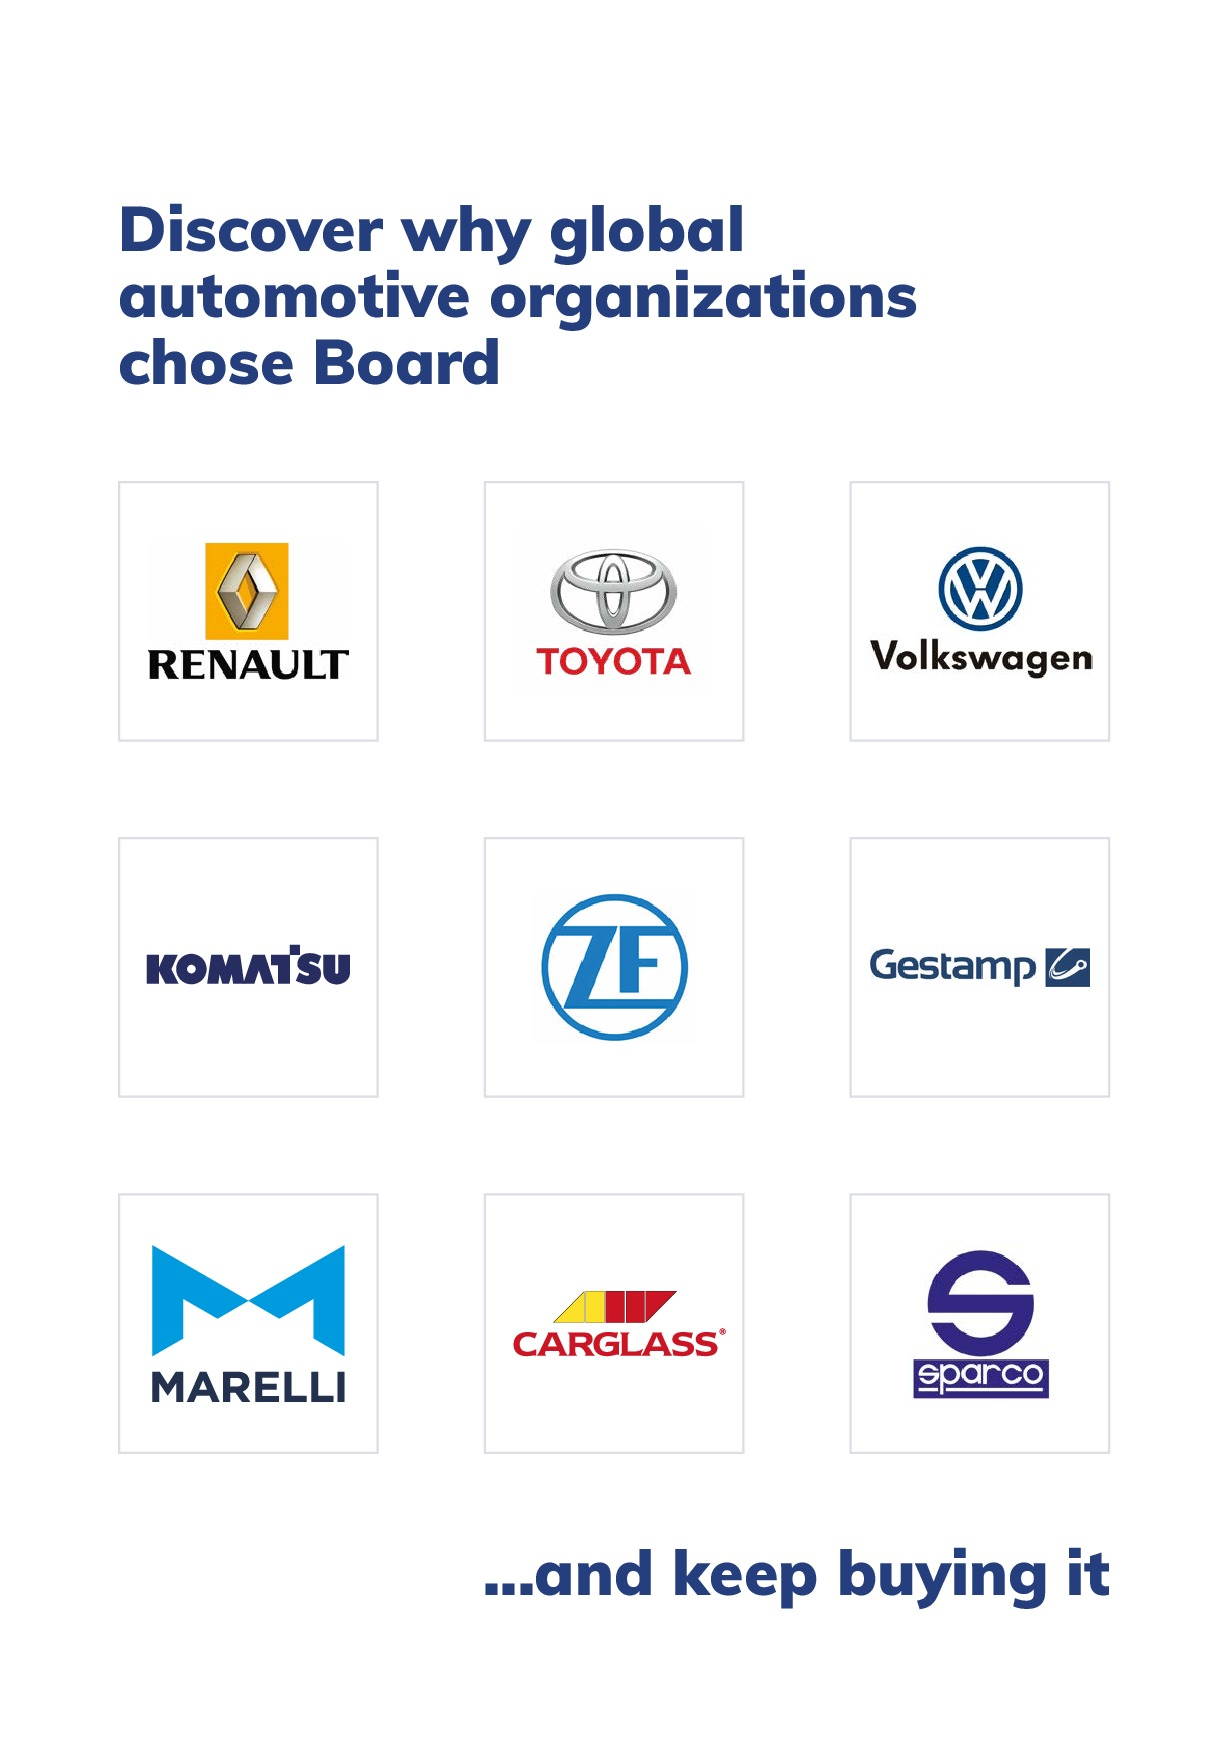 Augmenting carmakers, suppliers and car dealers' decision-making processes | Page 2